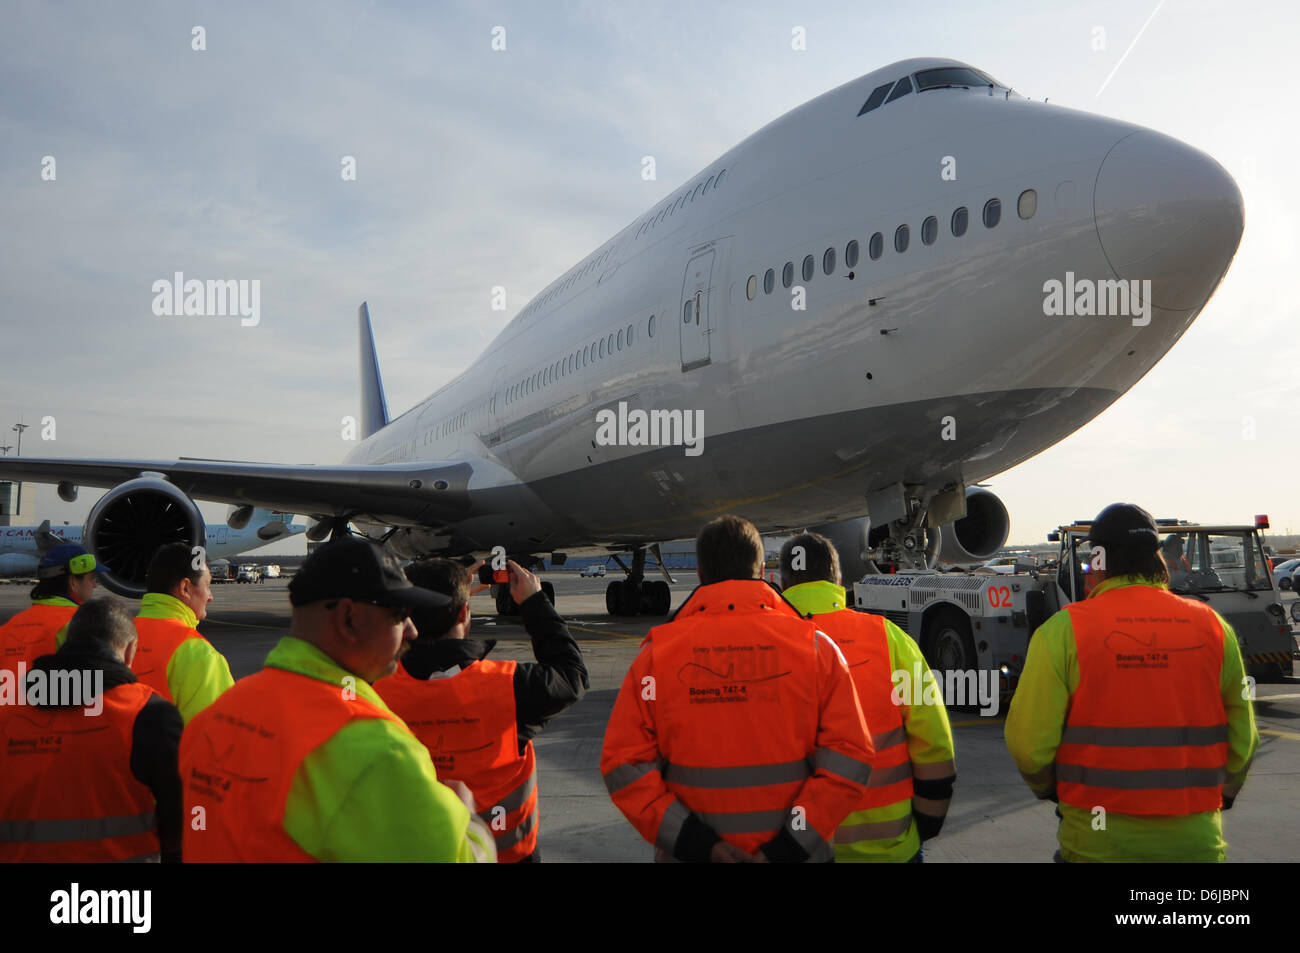 A Boeing 747-8 Intercontinental aircraft rolls to a gate at the airport in Frankfurt am Main, Germany, 08 December - Stock Image